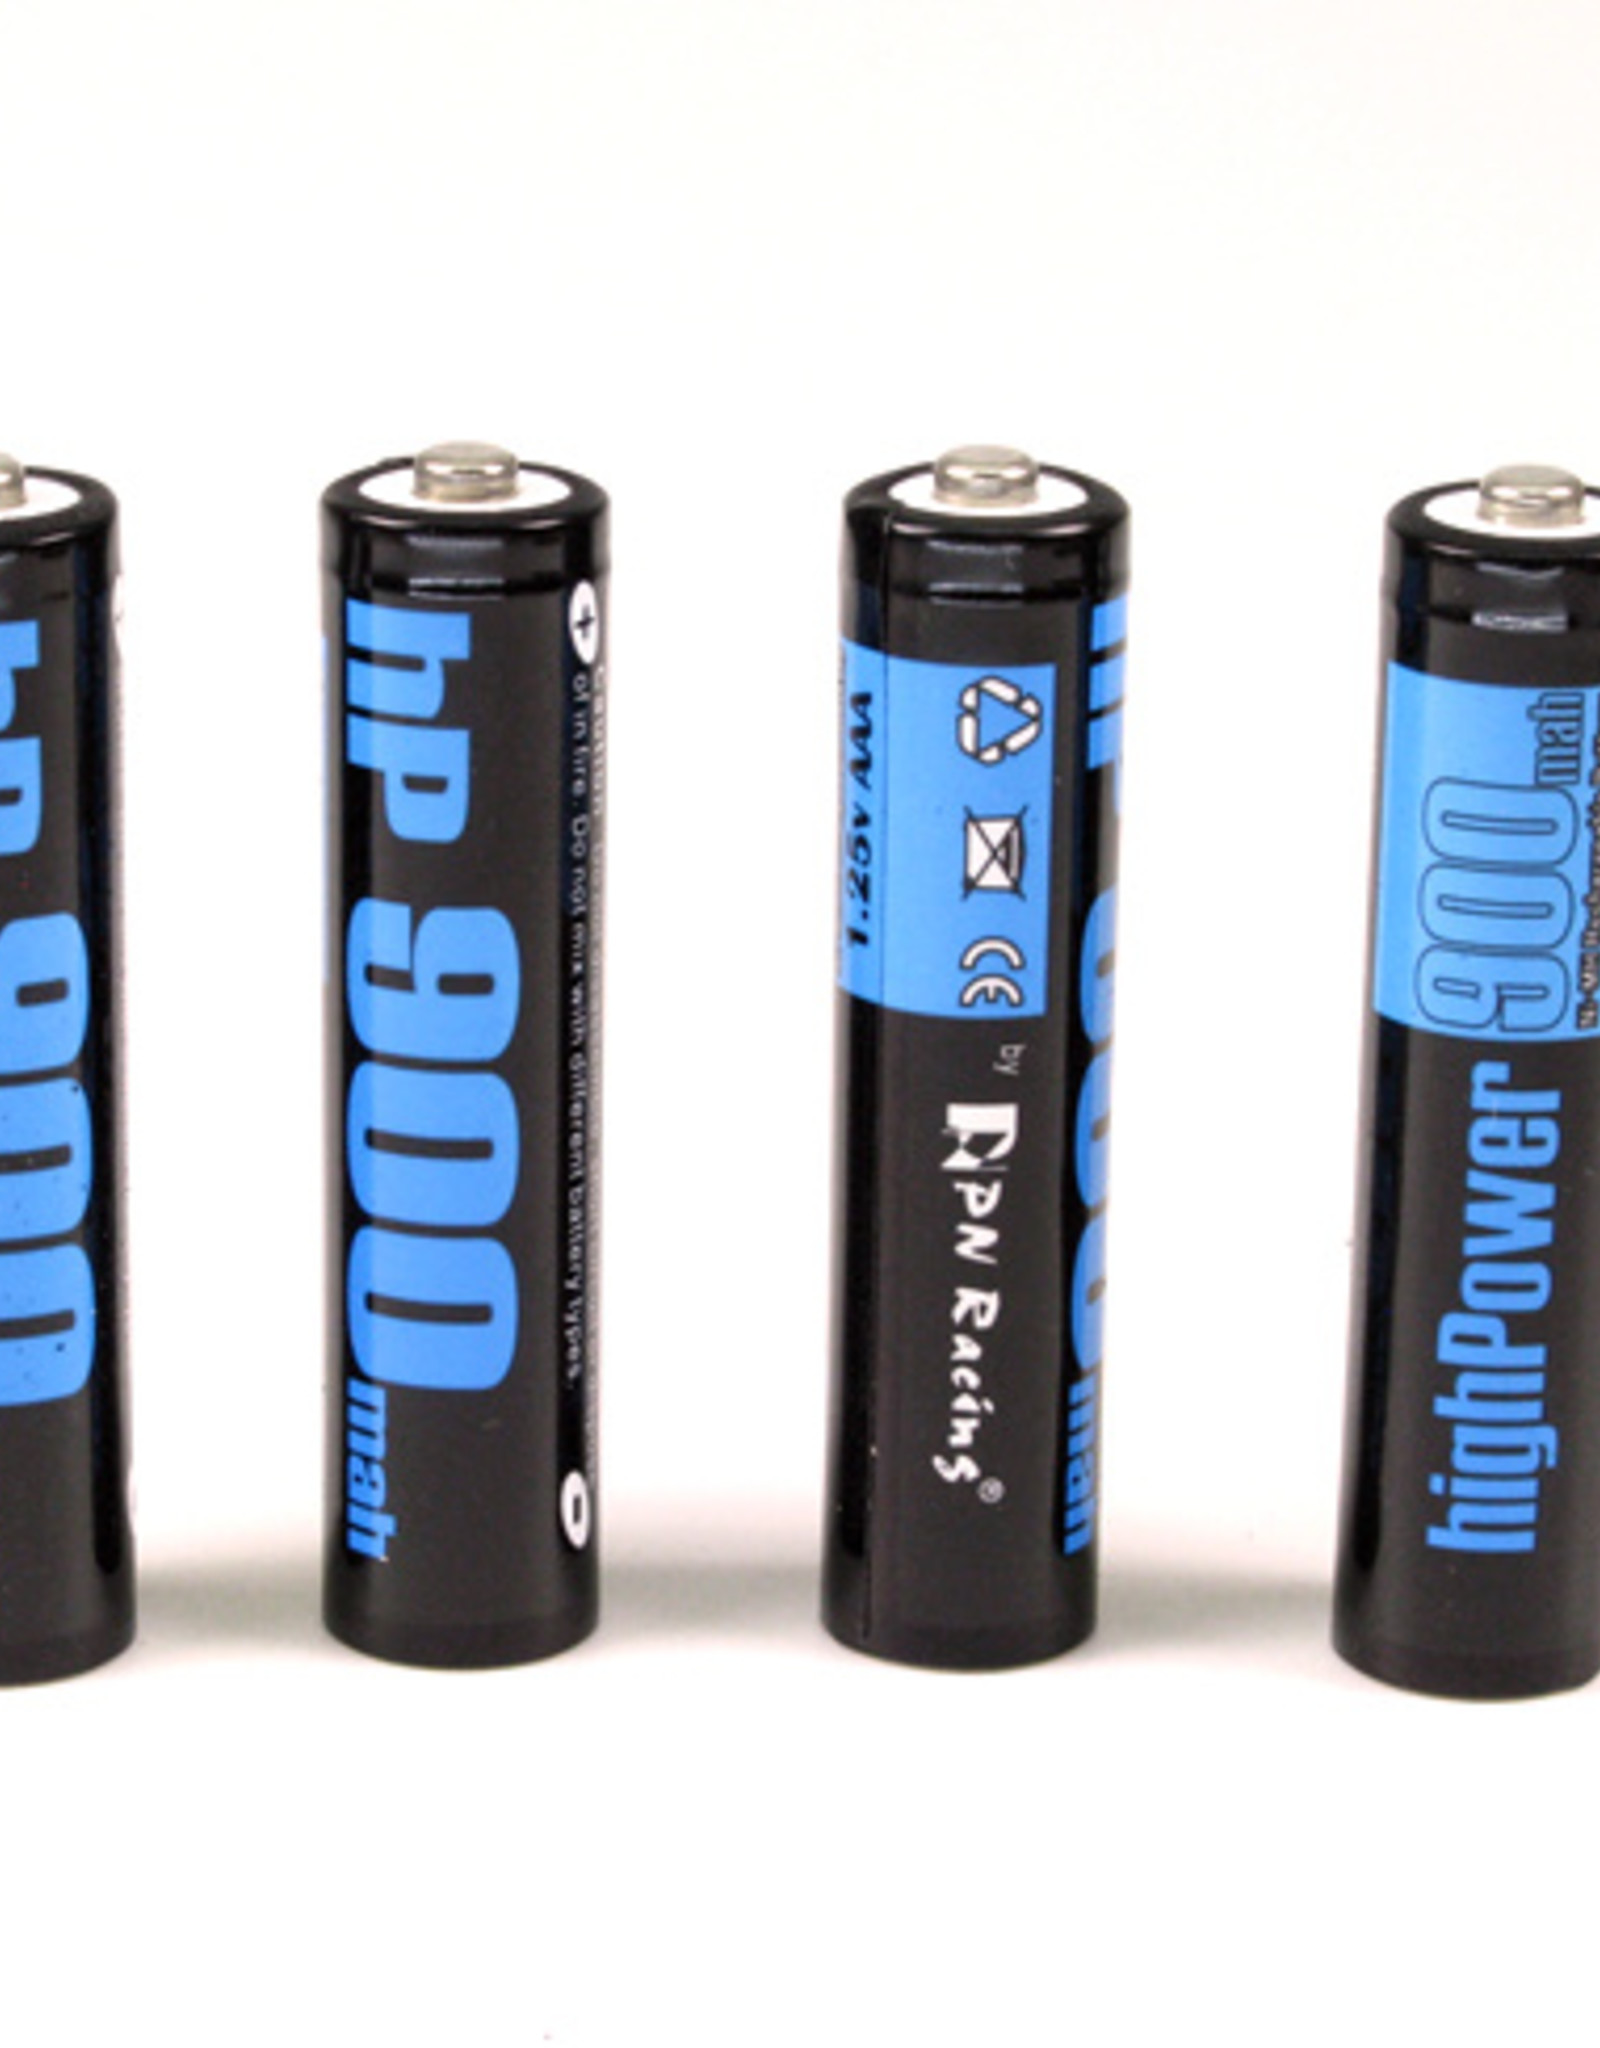 Pn Racing PN Racing High Power 900mah Ni-MH Rechargeable AAA Battery (4pcs)